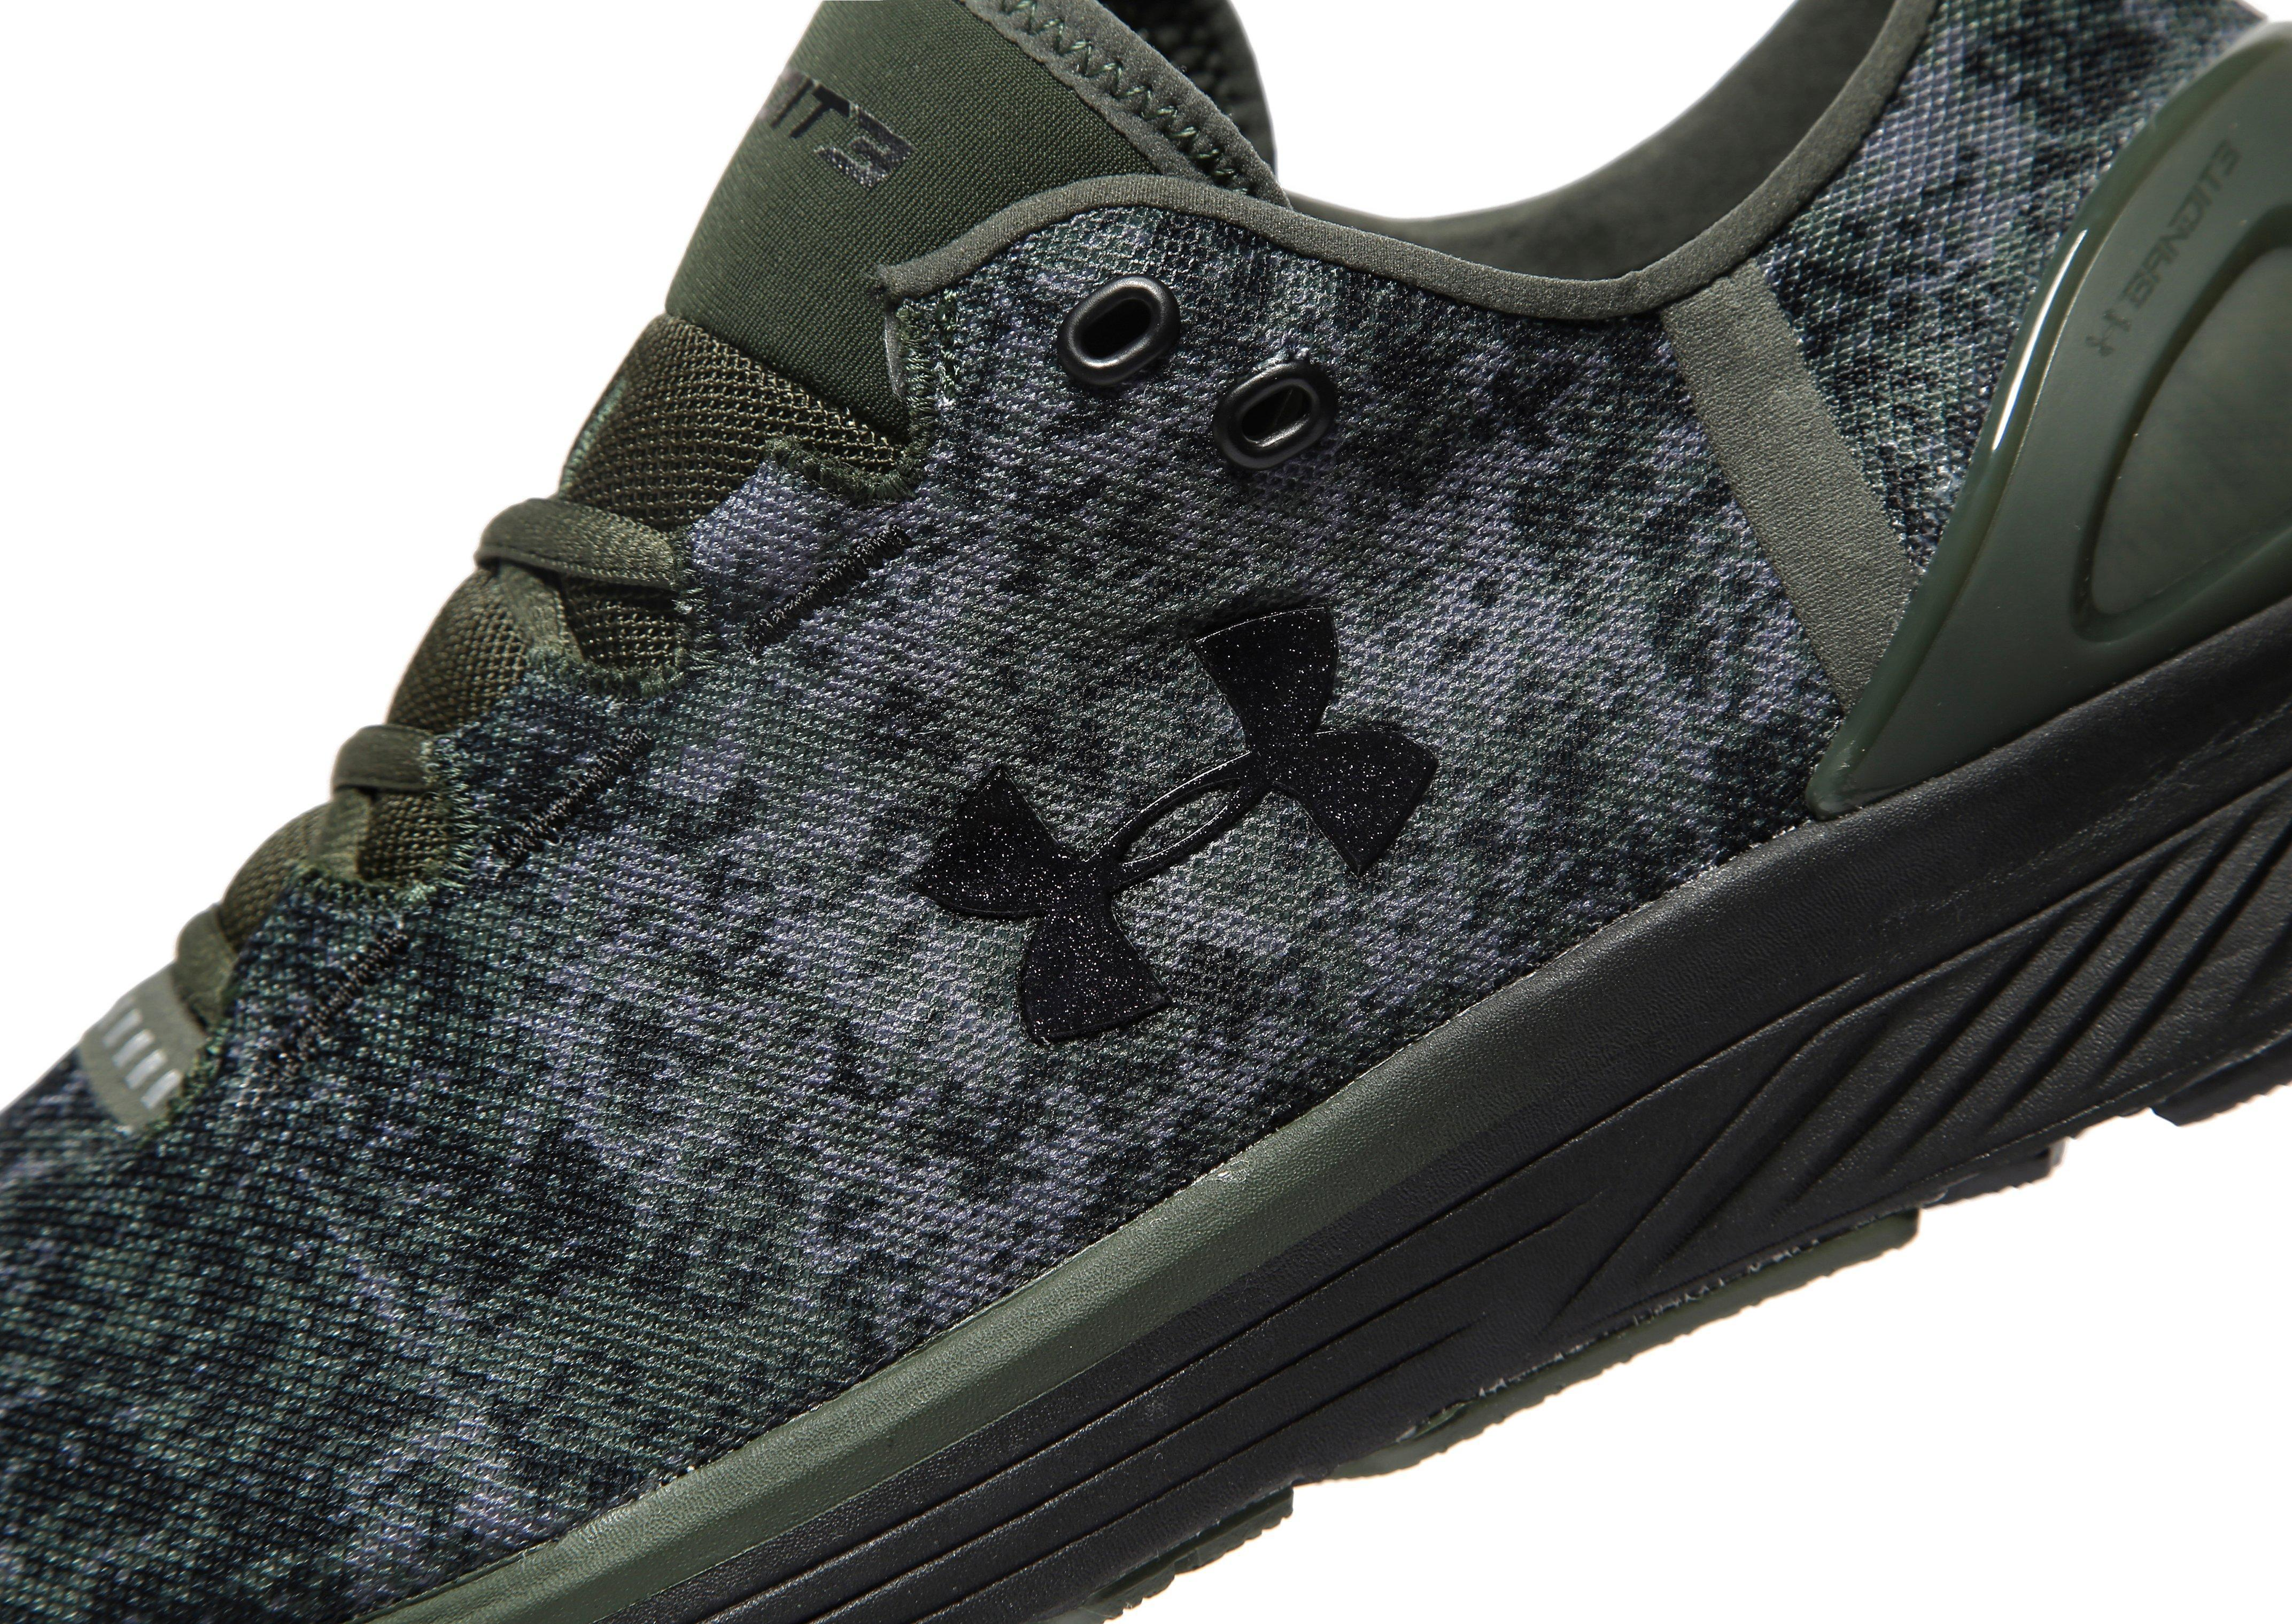 sports shoes d3911 2de01 Under Armour Synthetic Bandit 3 Gr in Green/Camo (Green) for ...